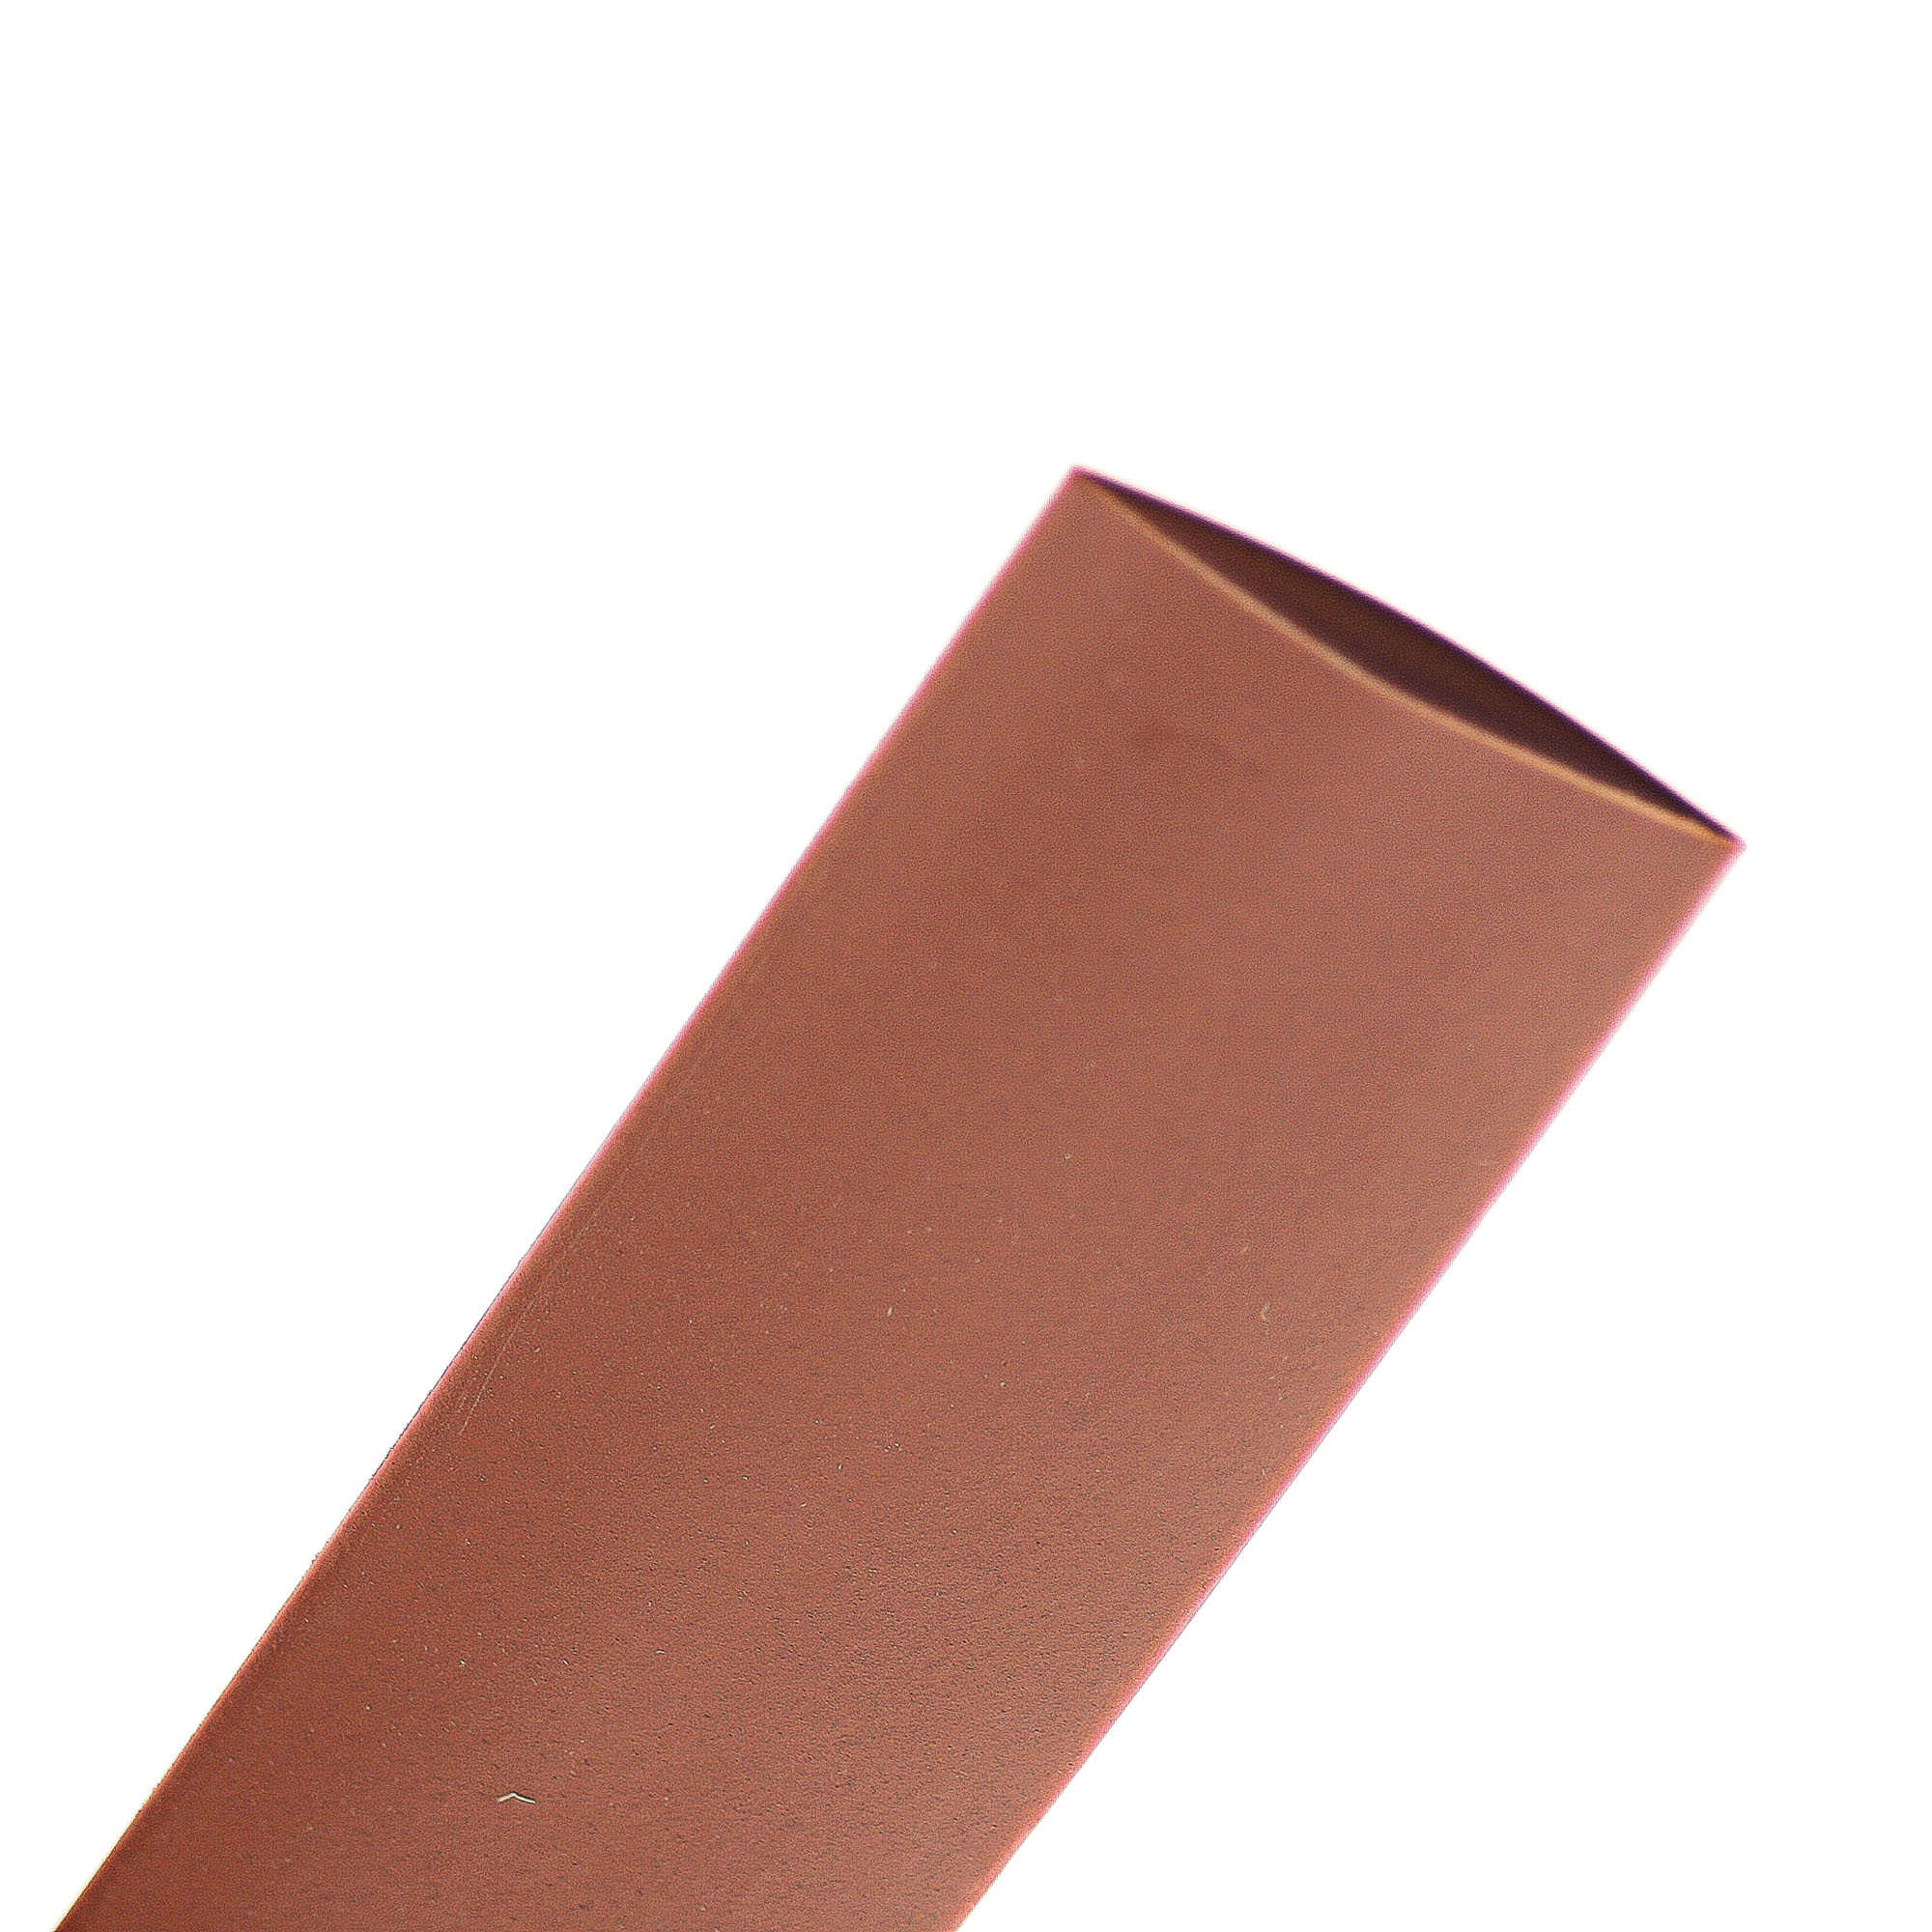 Heat shrink tube 2:1 / 16,0-8,0mm, 5m, red